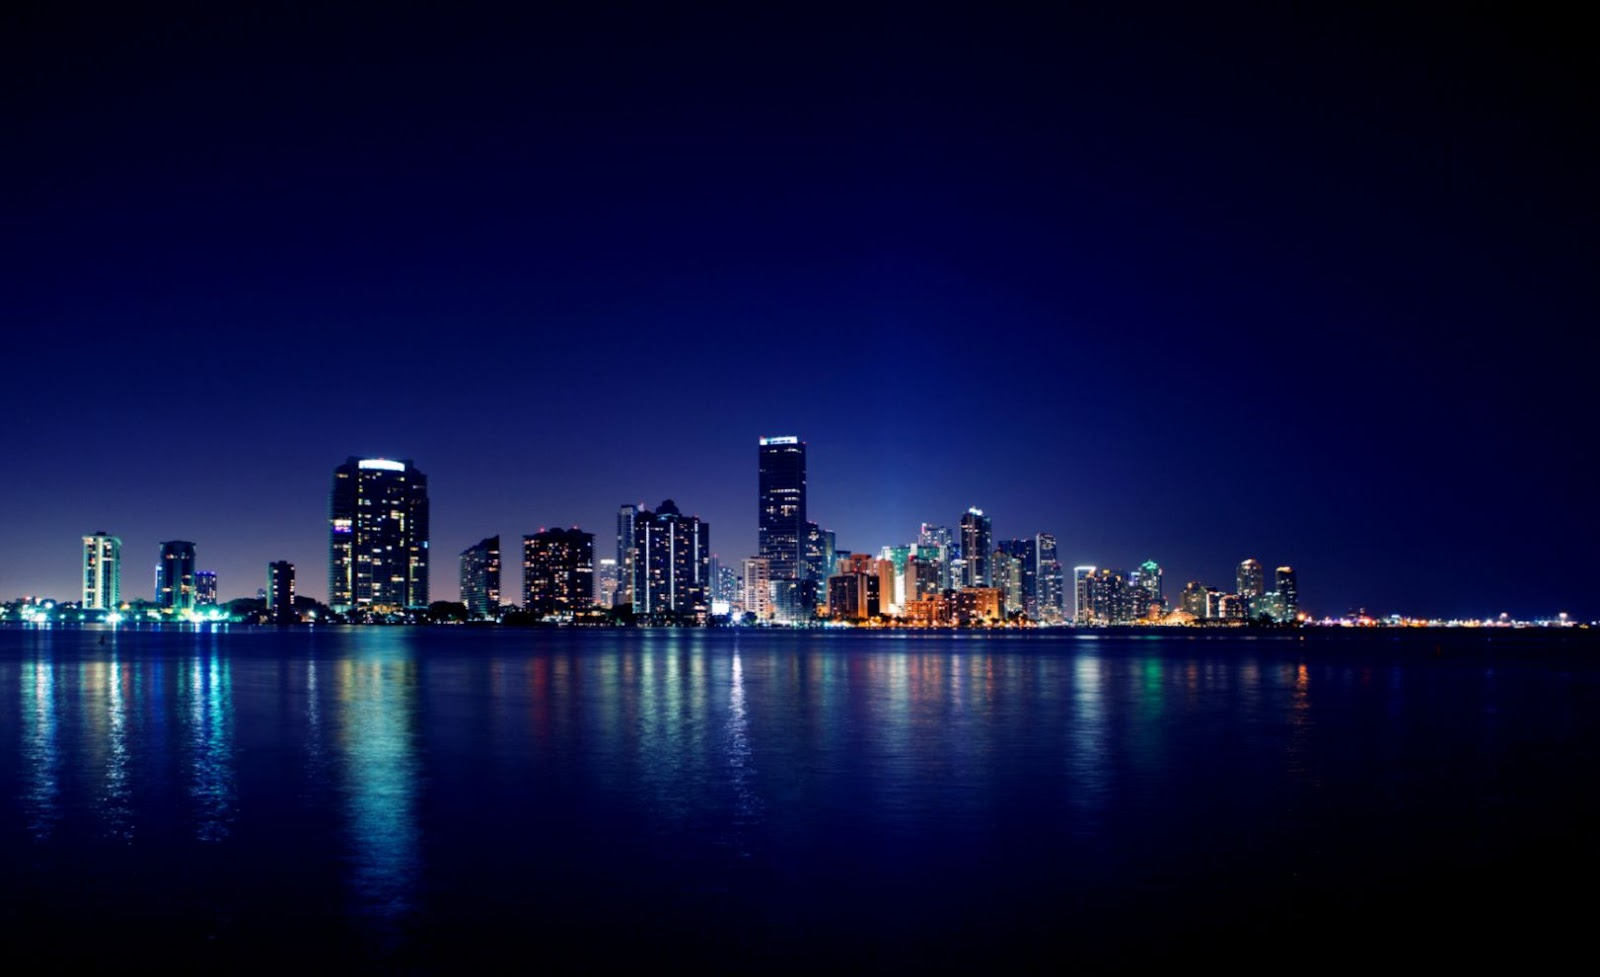 Skyline Miami City At Night Hd Wallpaper My Sims 3 Downloads